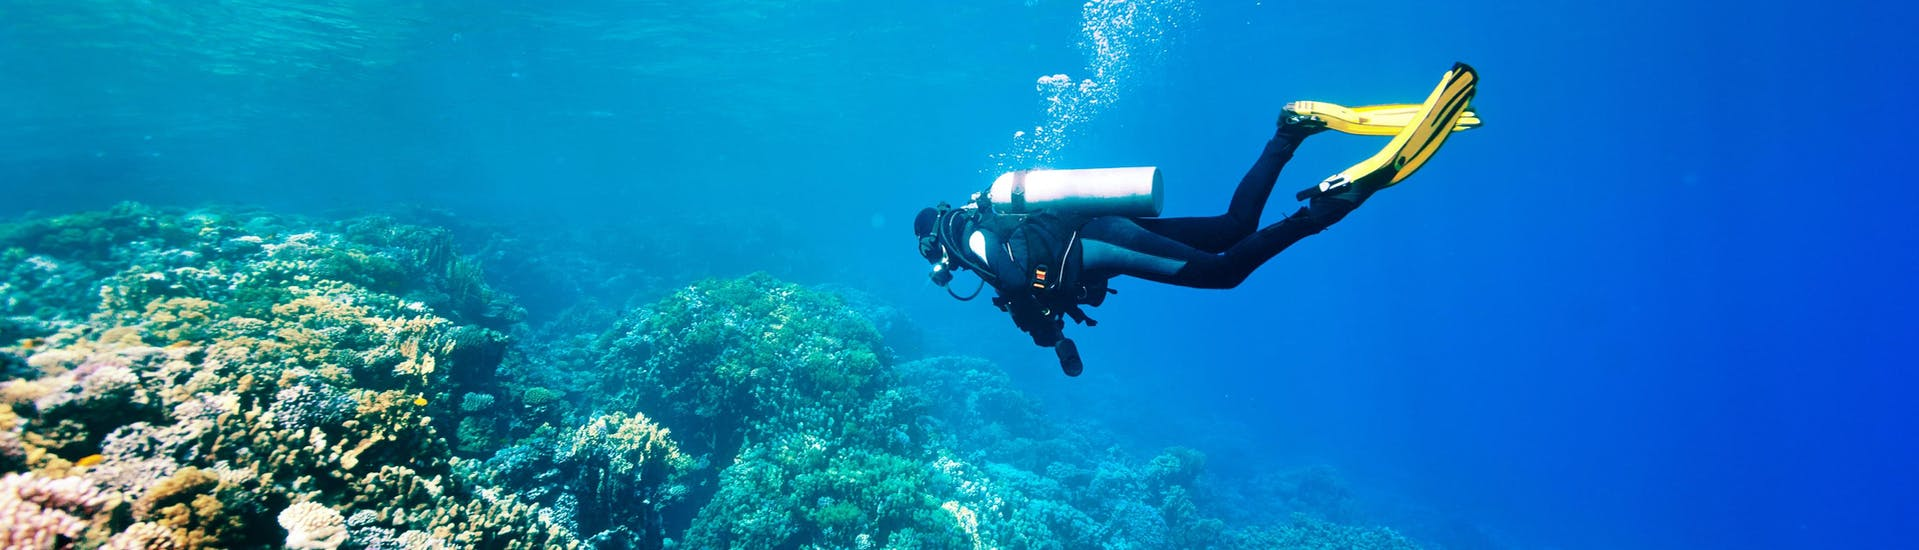 A scuba diver is exploring a reef while scuba diving in the scuba diving destination of Kampor.